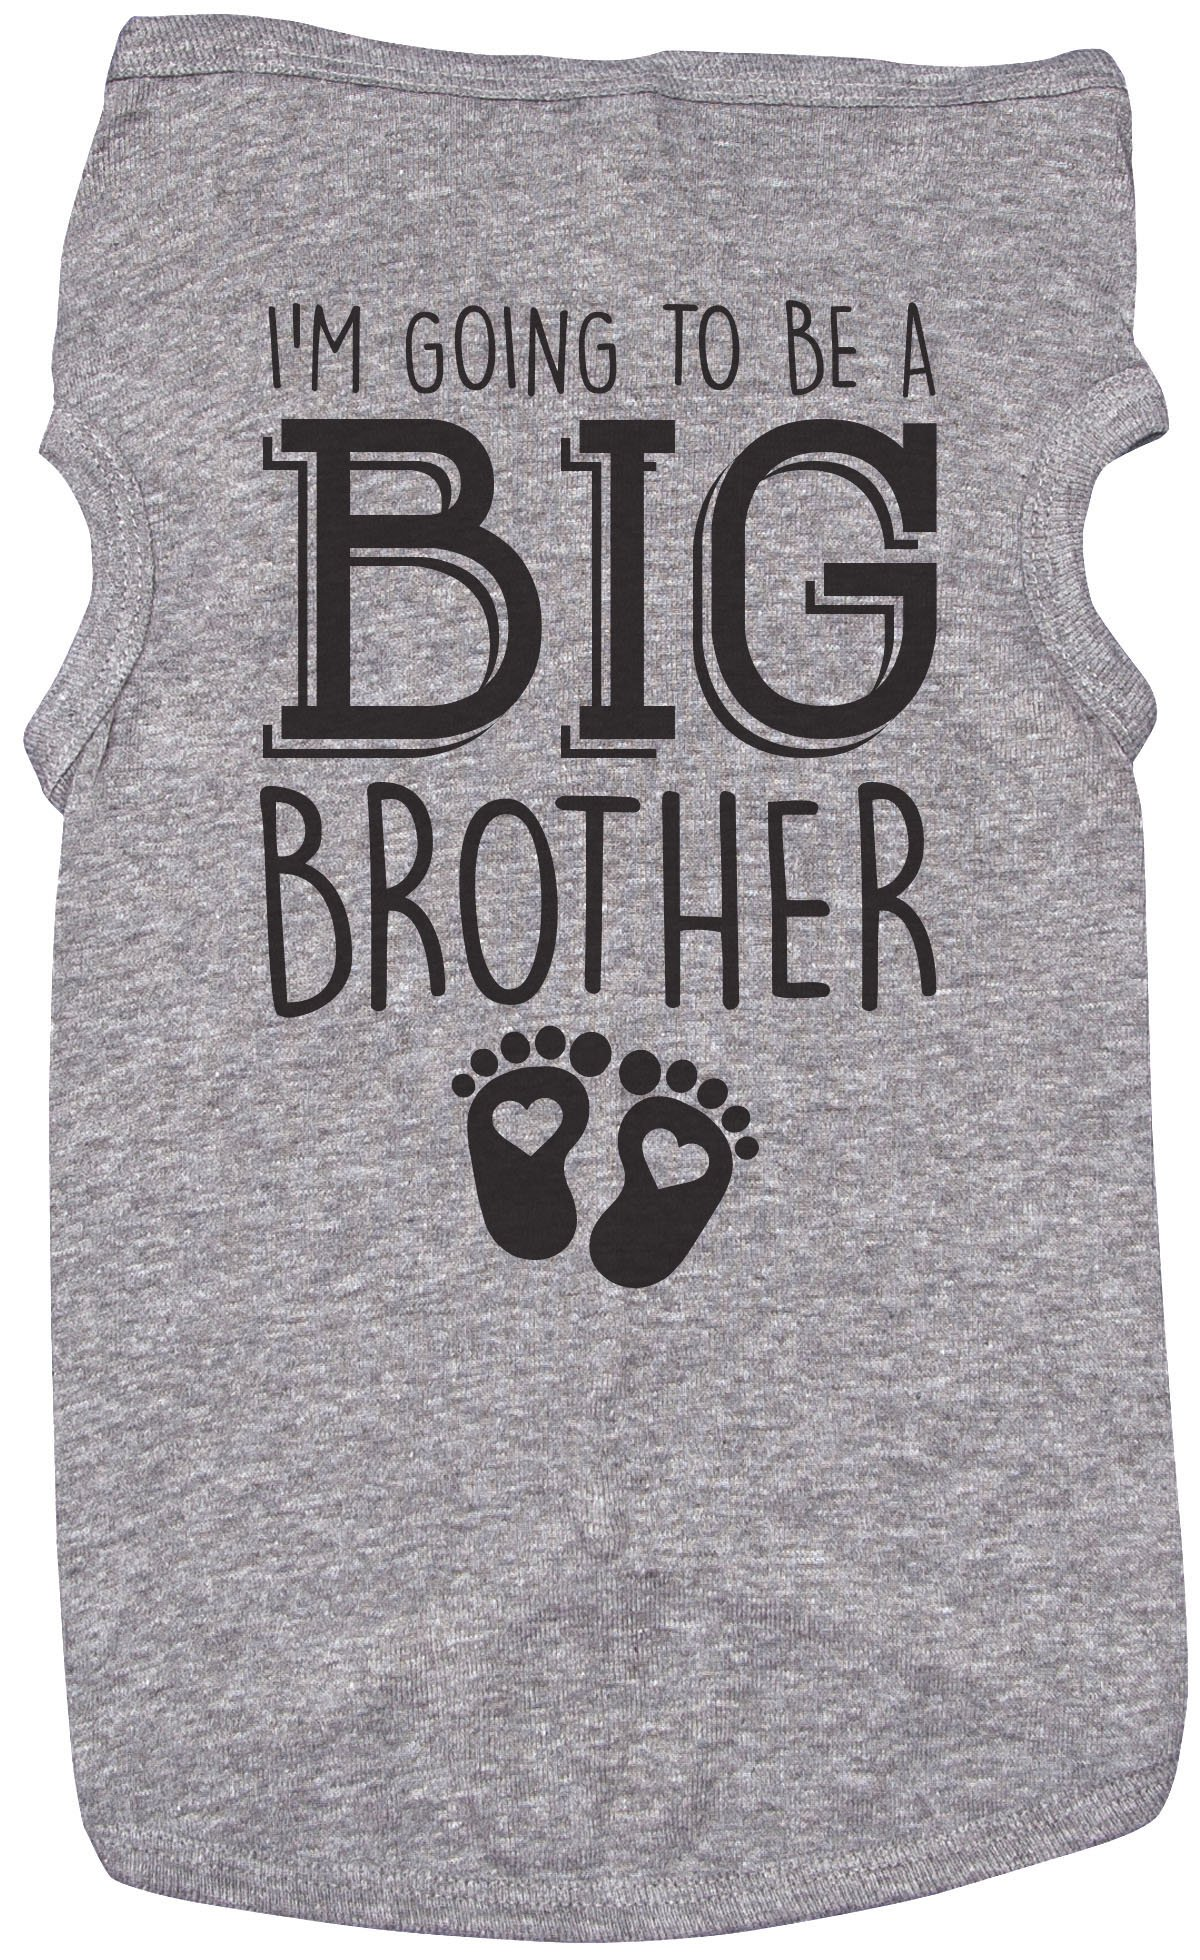 Big Brother Shirt for Dogs/I'm Going to BE A Big Brother/Puppy Shirt (XL, Grey)